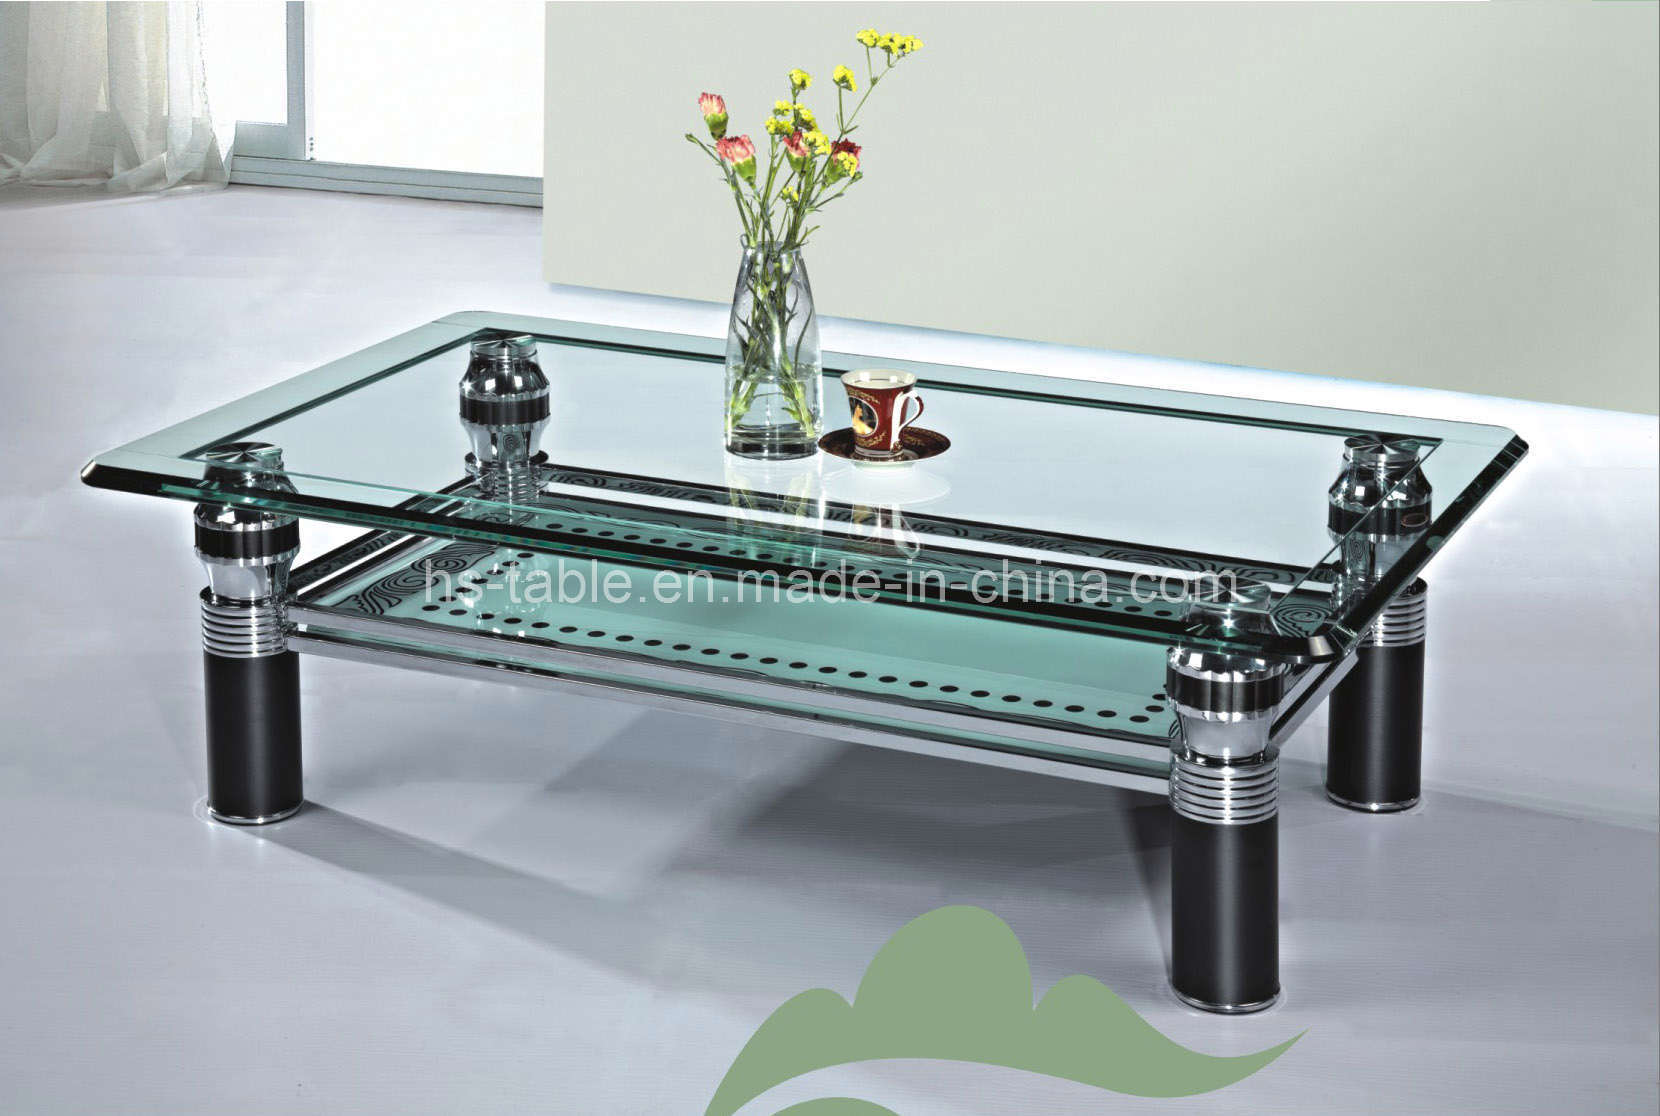 China glass furniture glass coffee table 2293 china for Glass furniture